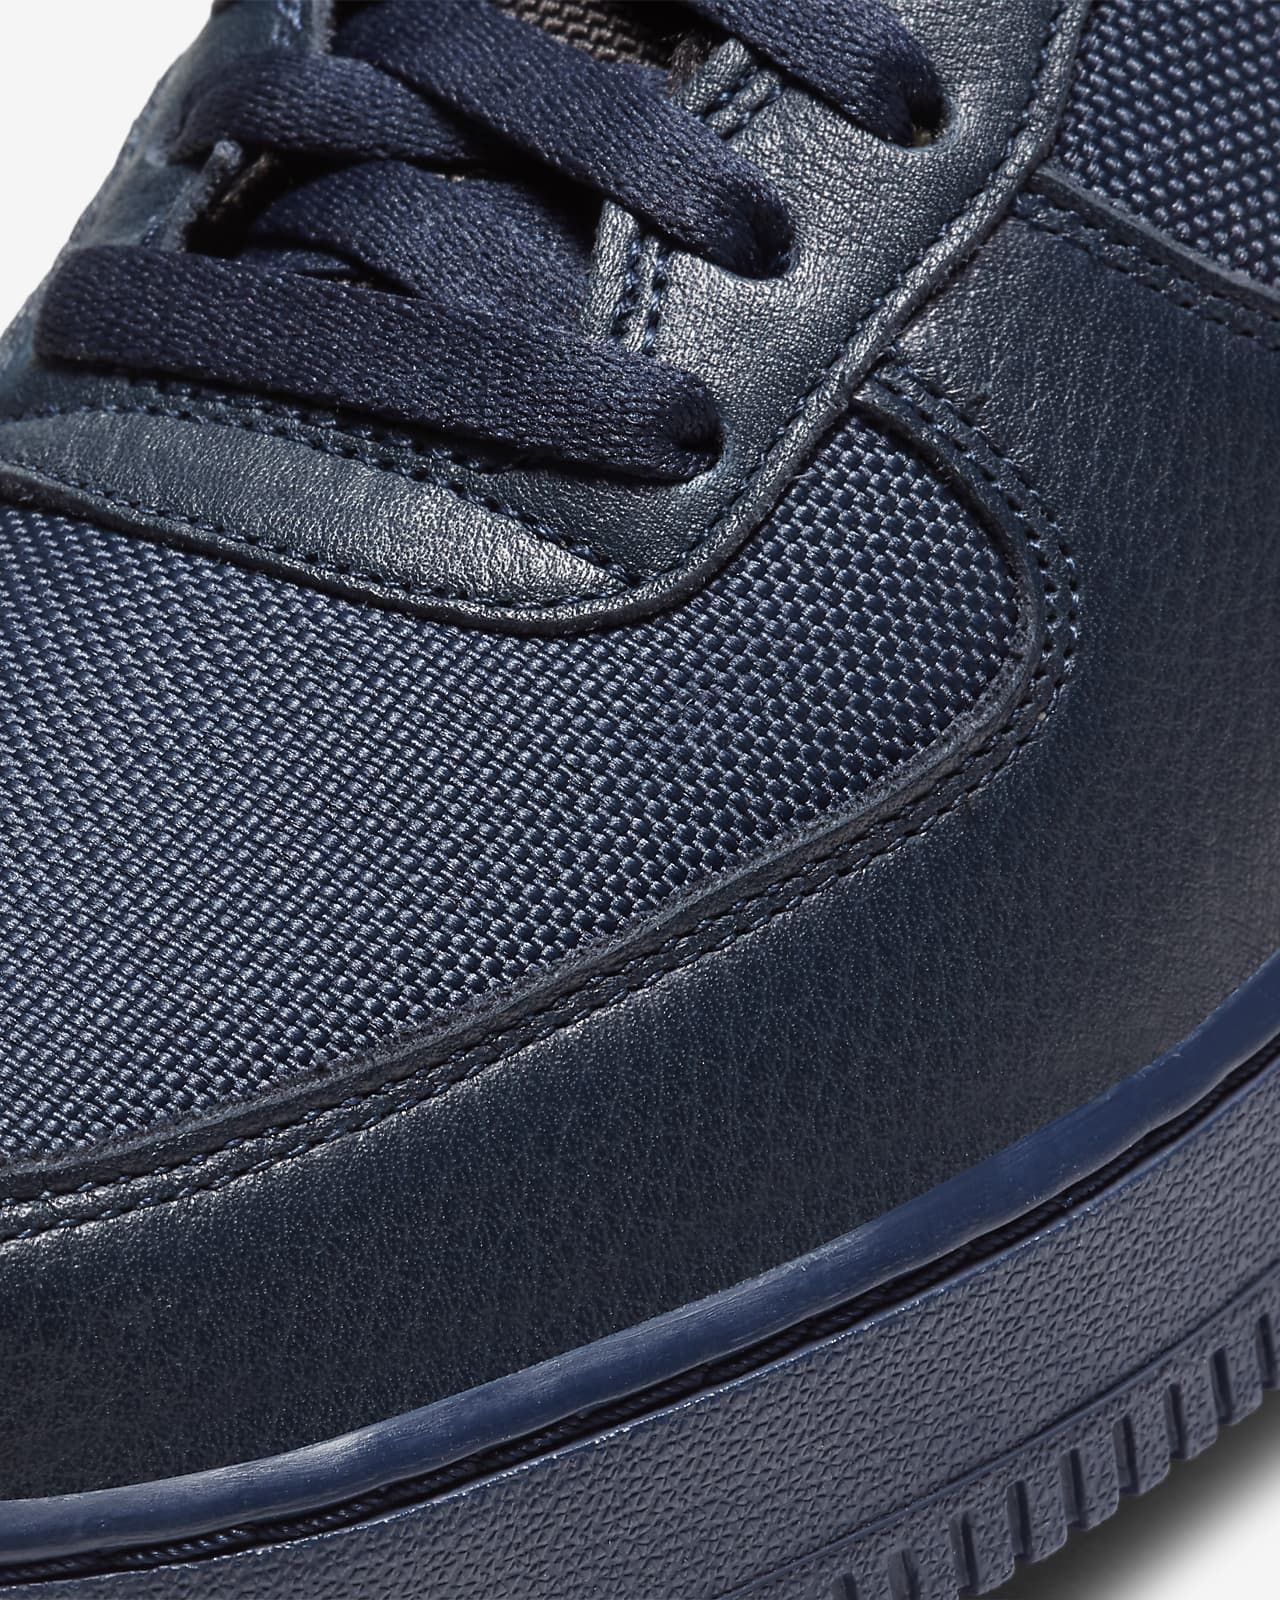 nike air force 1 uomo gortex